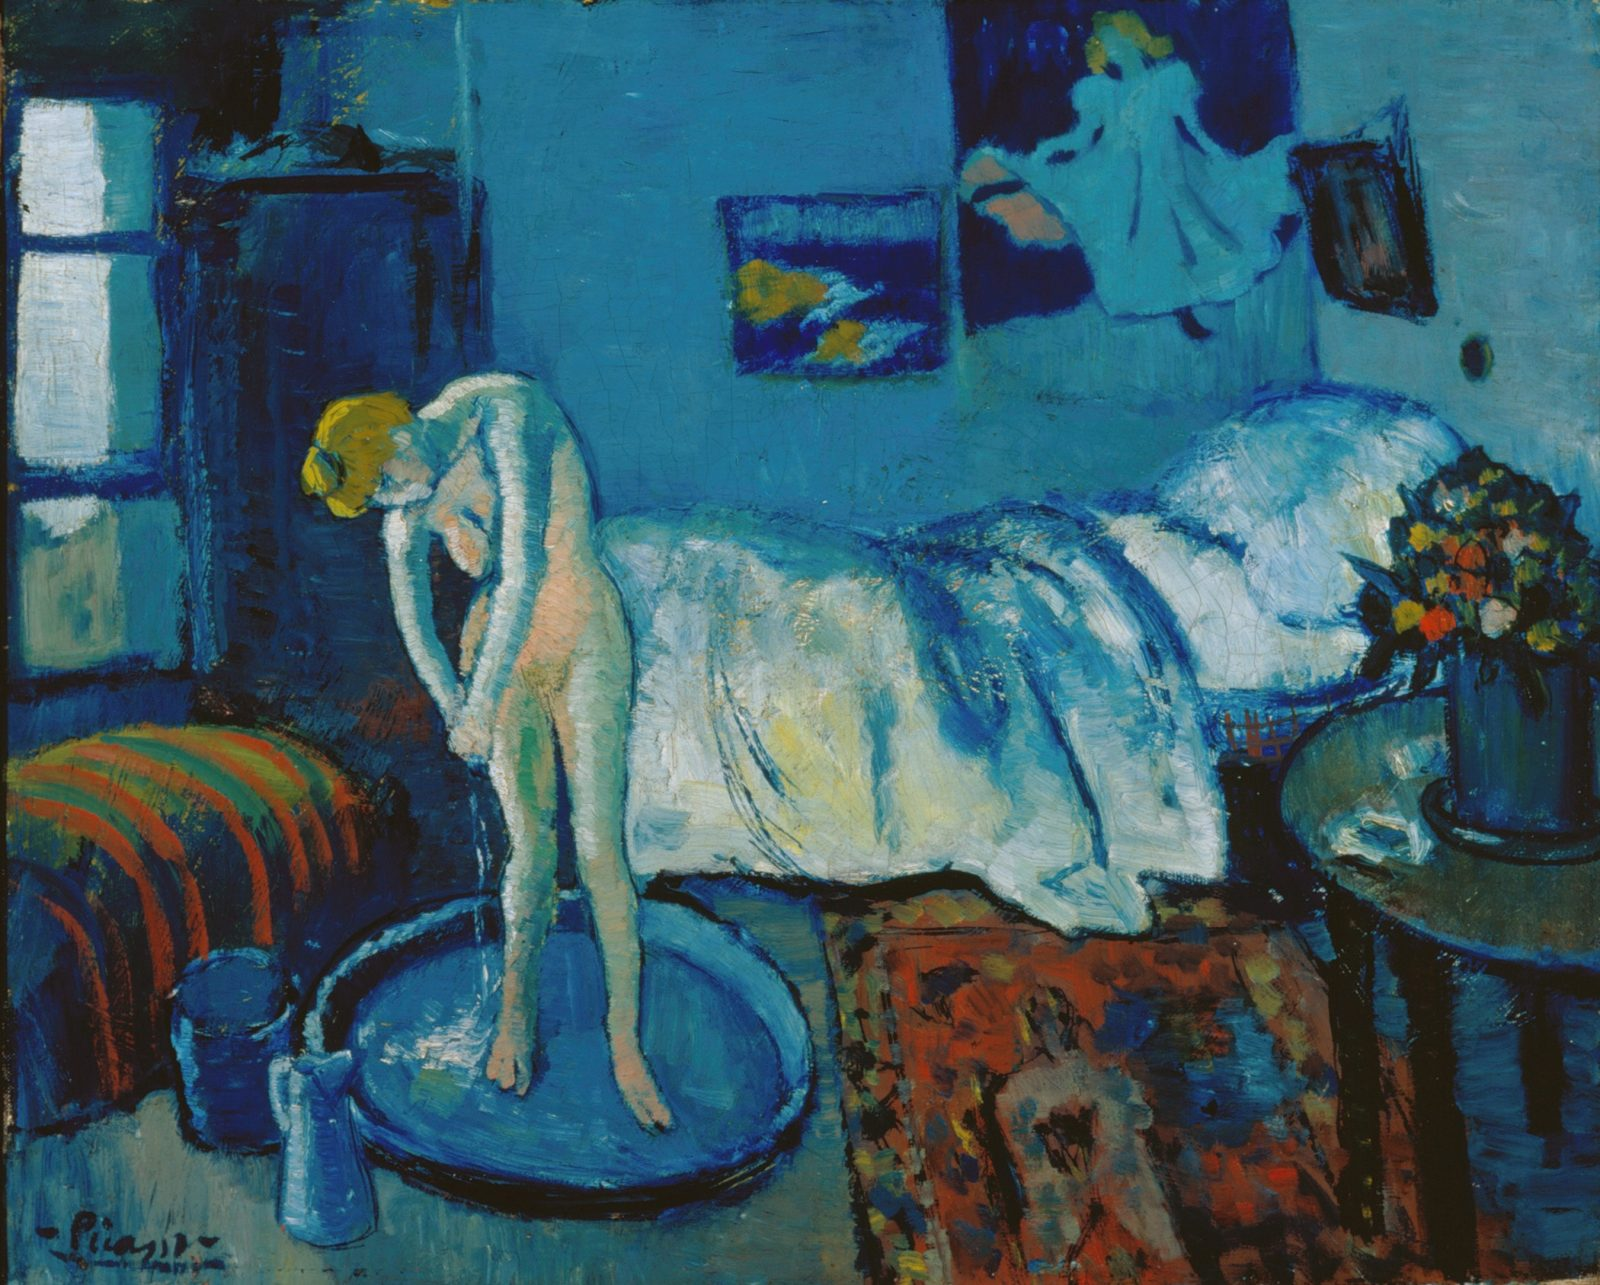 """The Blue Room"" by Pablo Picasso. Photo courtesy of www.antiquesandfineart.com"